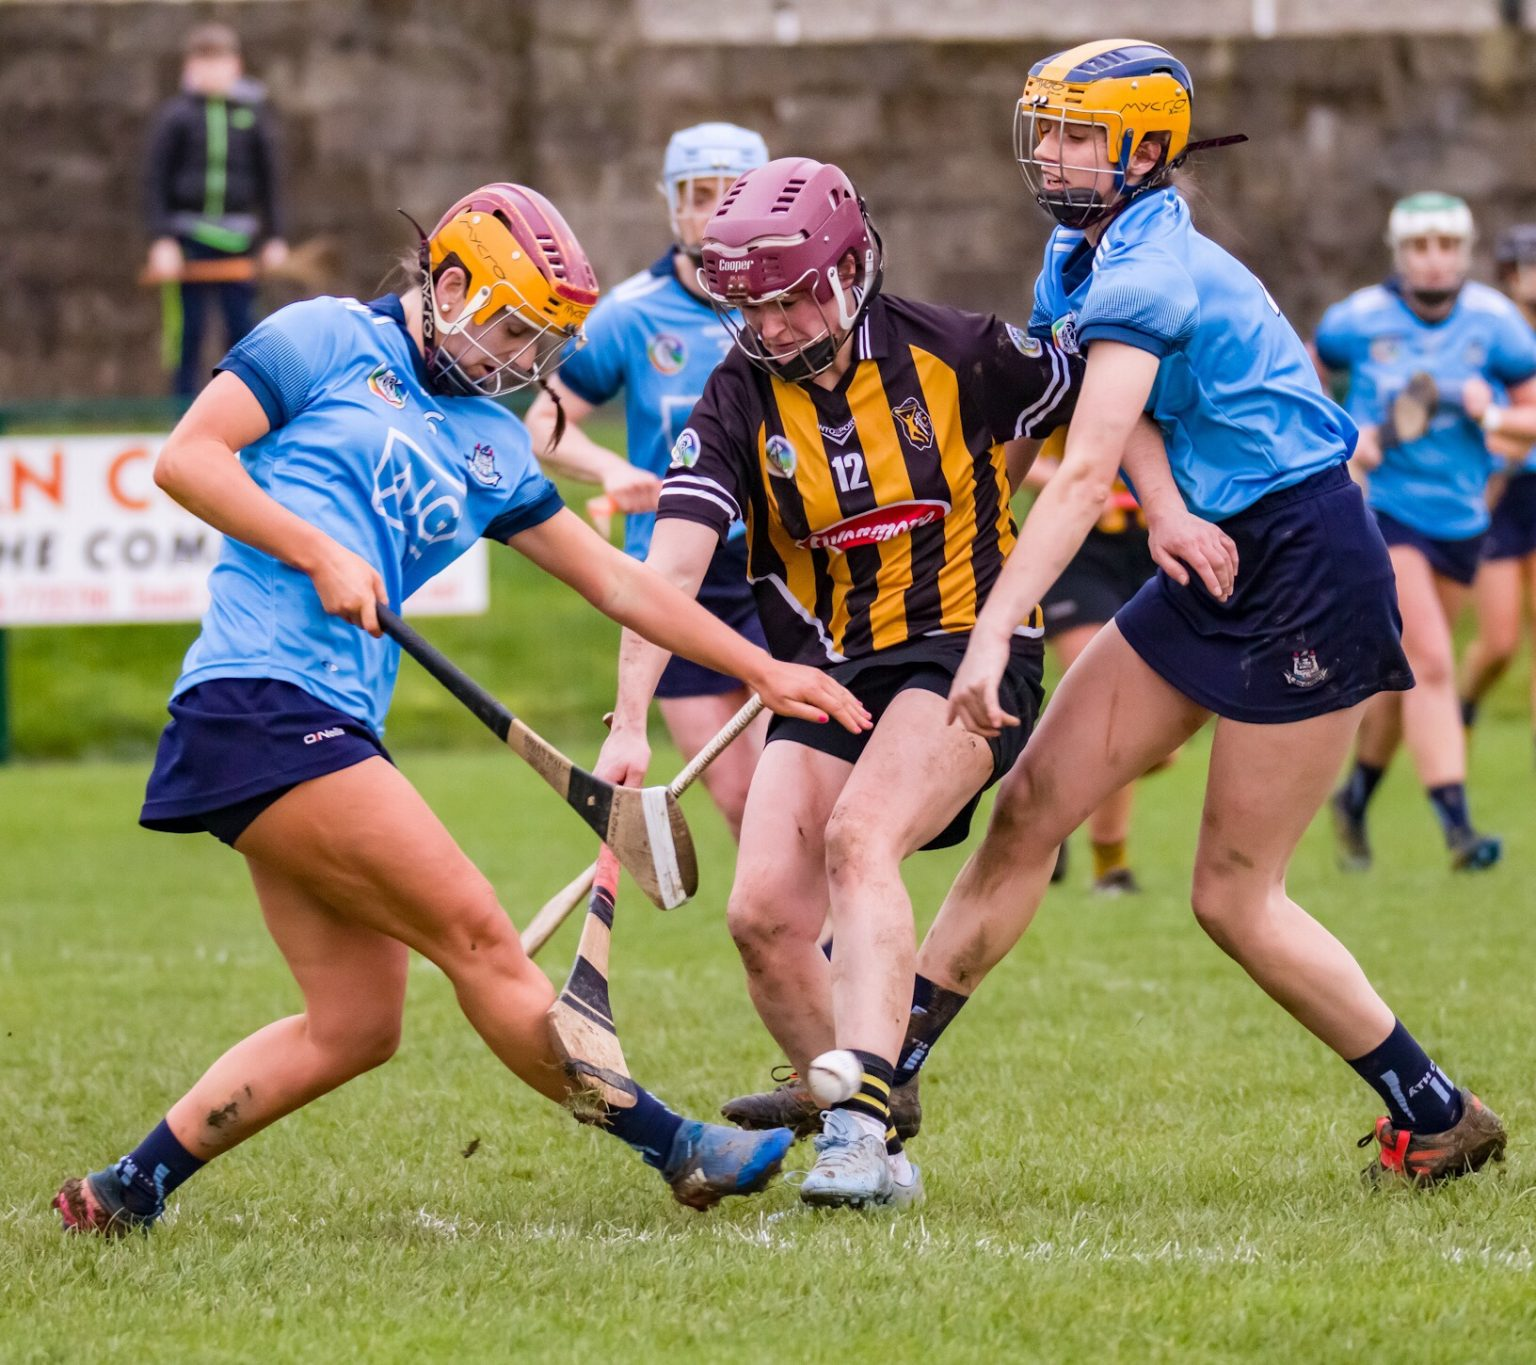 Two Dublin Camogie players in sky blue jerseys tackle a Kilkenny player in black and amber striped jersey